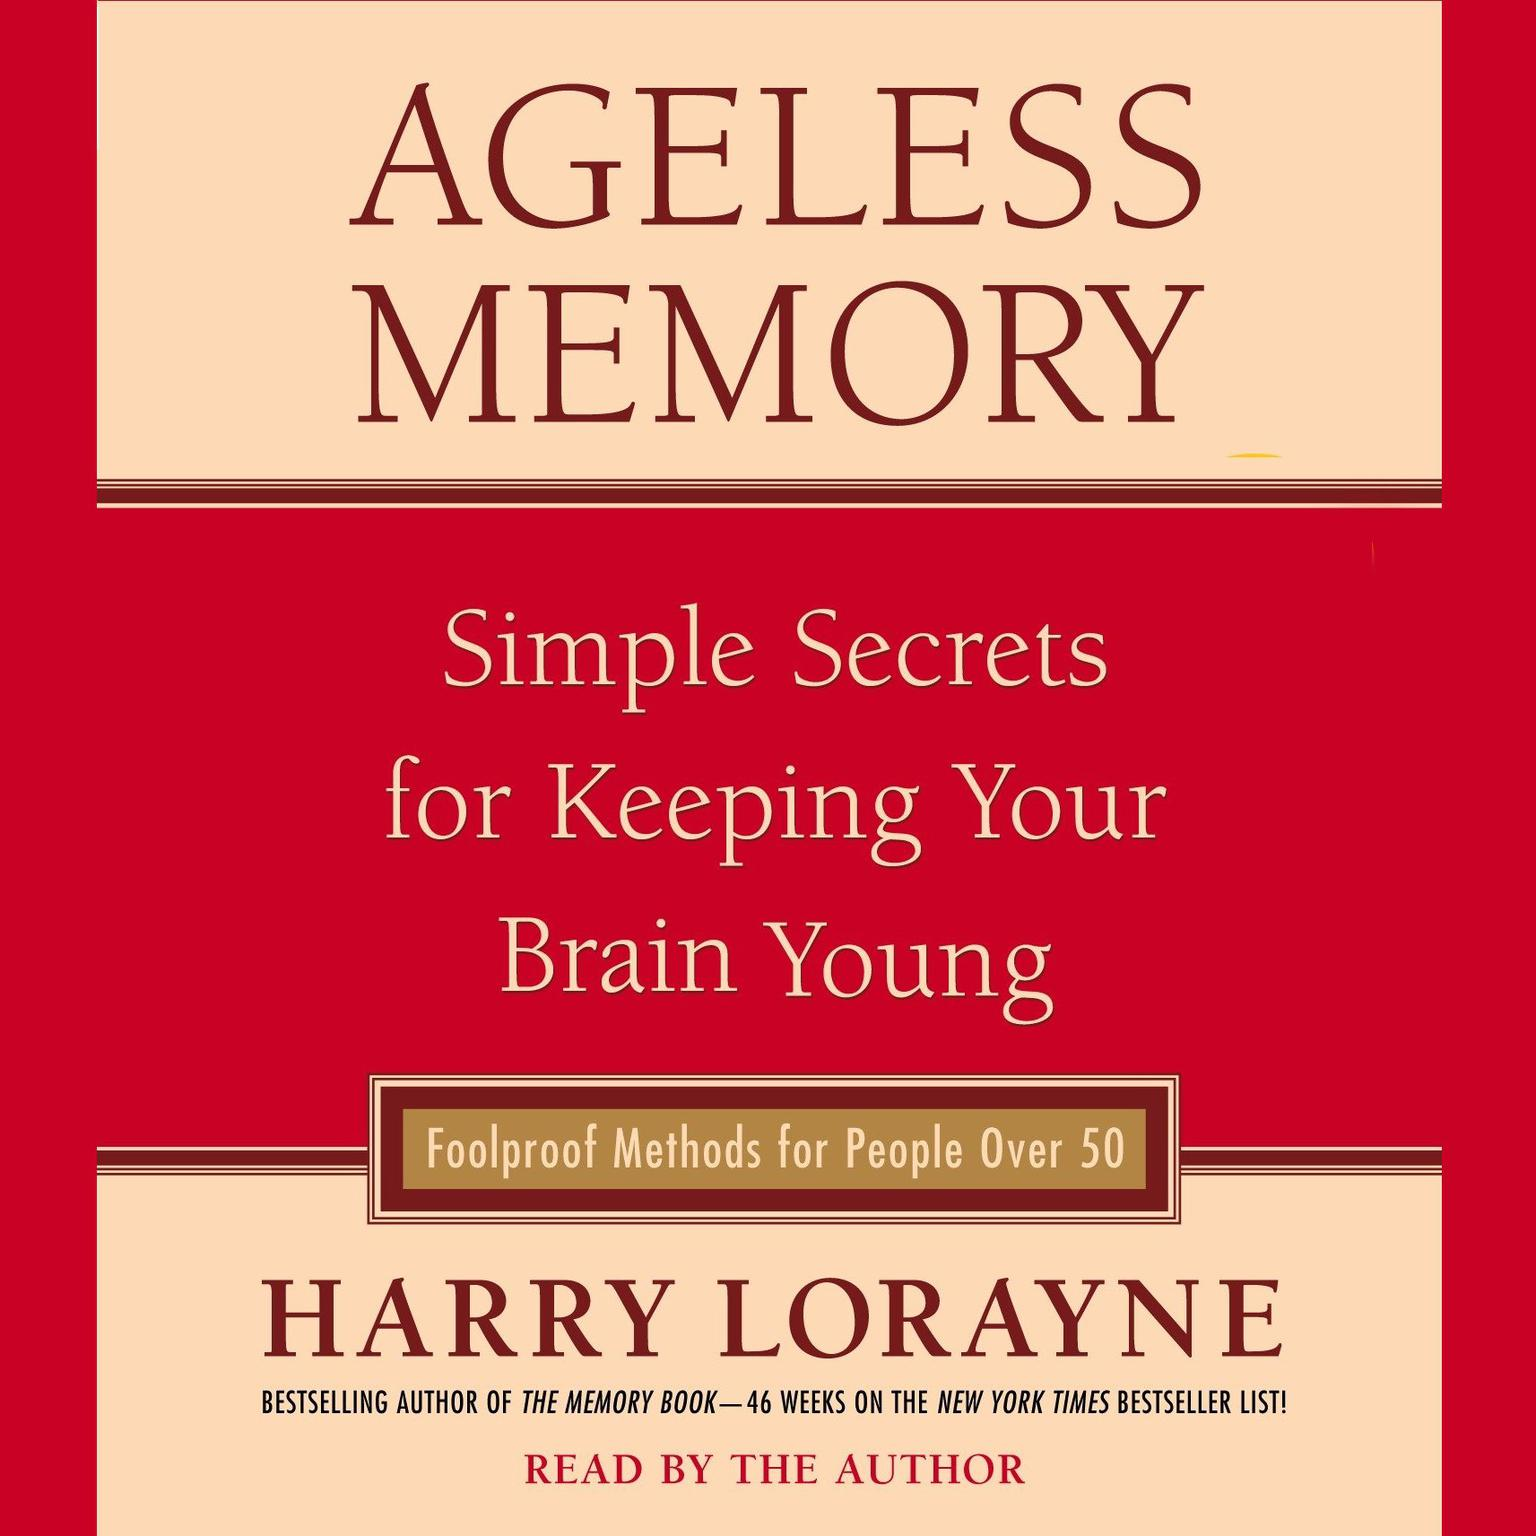 Printable Ageless Memory: Simple Secrets for Keeping Your Brain Young—Foolproof Methods for People Over 50 Audiobook Cover Art